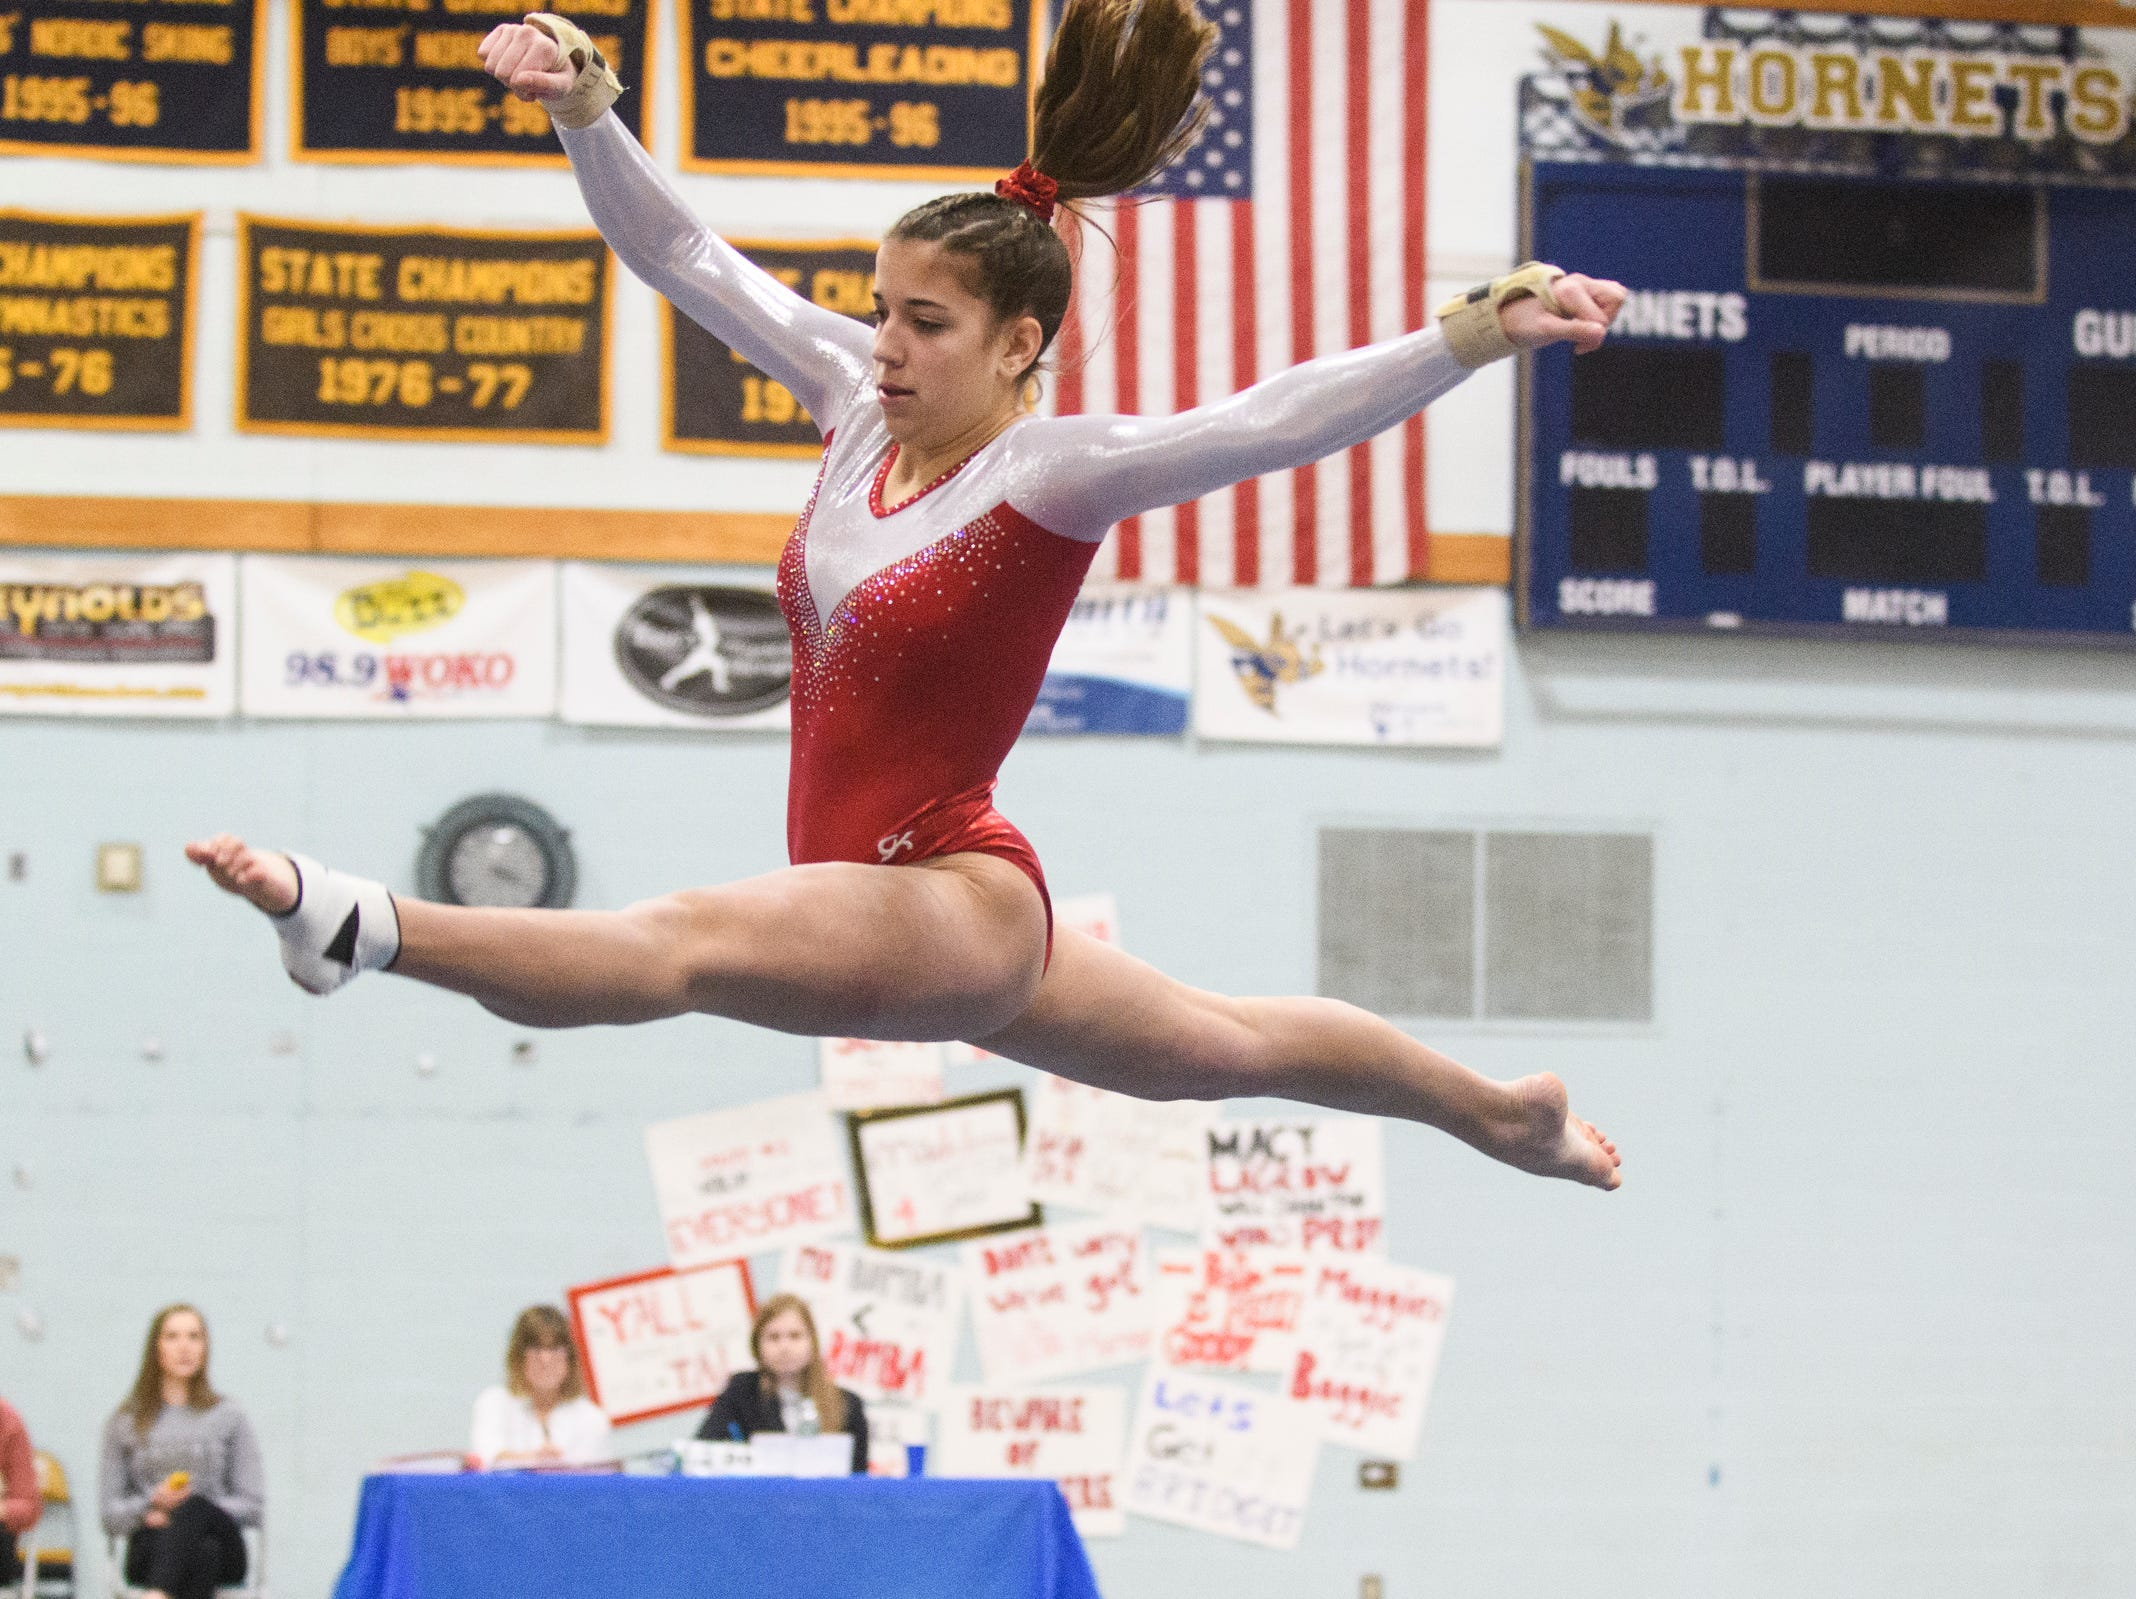 CVU's Taylor Hoar competes in the floor routine during the 2019 high school gymnastics championship at Essex High School on Saturday afternoon February 16, 2019 in Essex, Vermont.